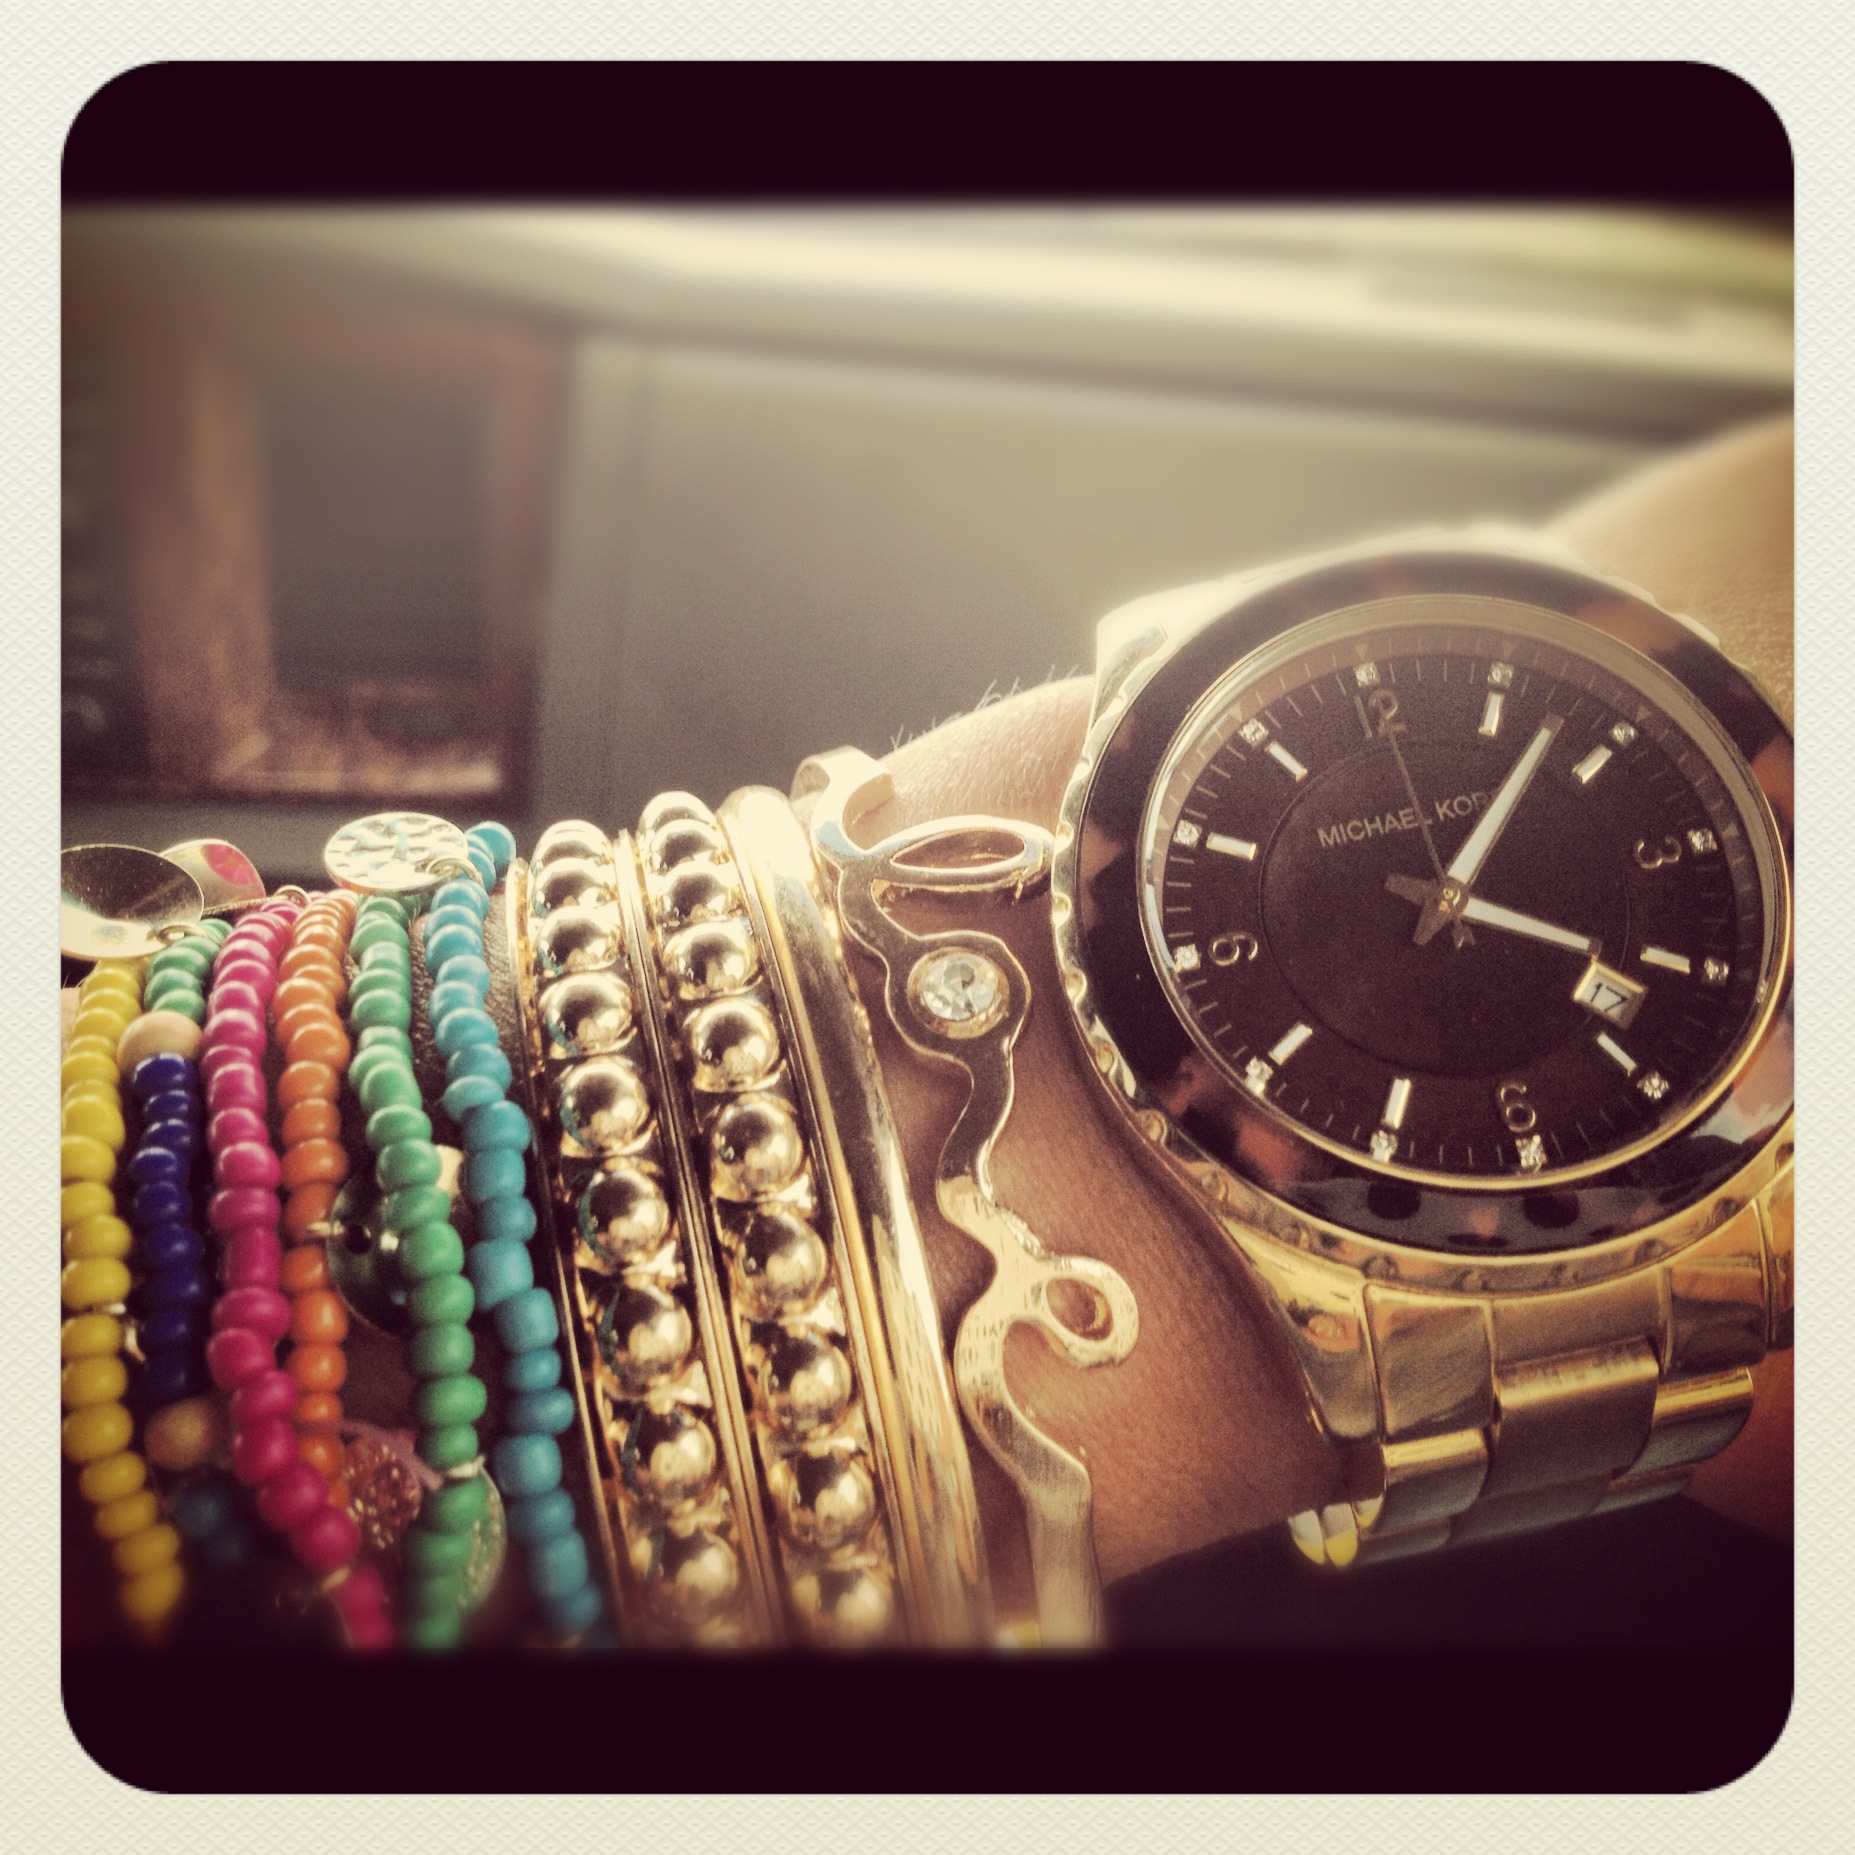 25d7ae34b6a9 You have probably noticed that I am almost always wearing a Michael Kors  watch ...